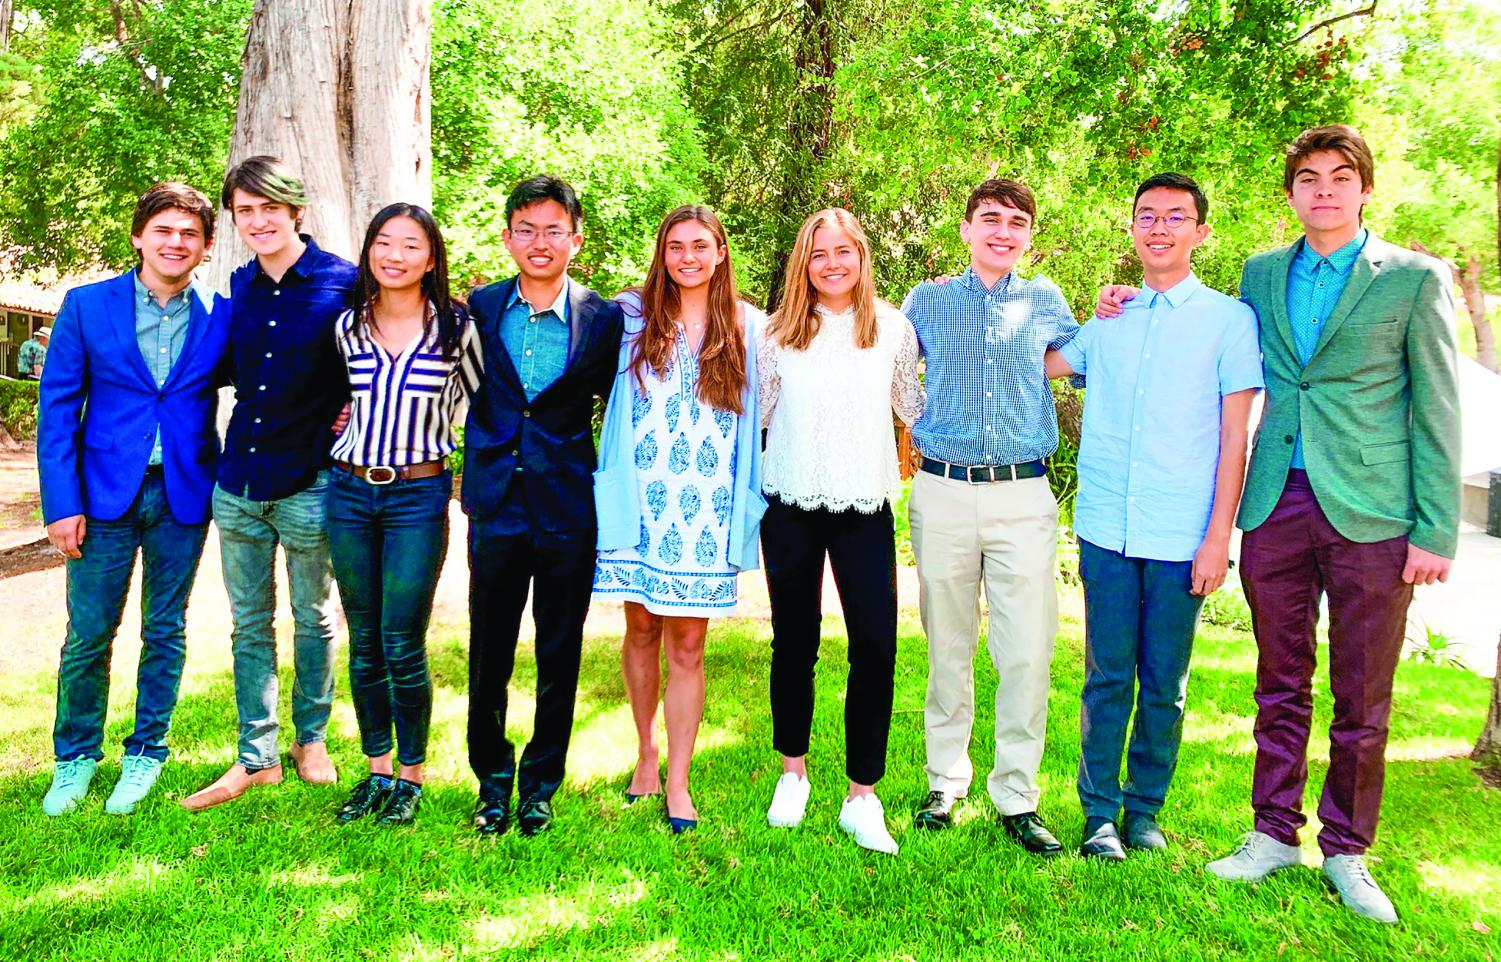 A gathering of newly inducted Cum Laude students following the official induction assembly. From left to right: Jack Stein '19, Jordan Bollag '19, Lucy Cao '20, Kai Nakamura '20, Audrey Murphy '20, Kiki Tolles '20, Bennett Coy '19, Bowen Bai '19, Caetano Perez-Marchant '20